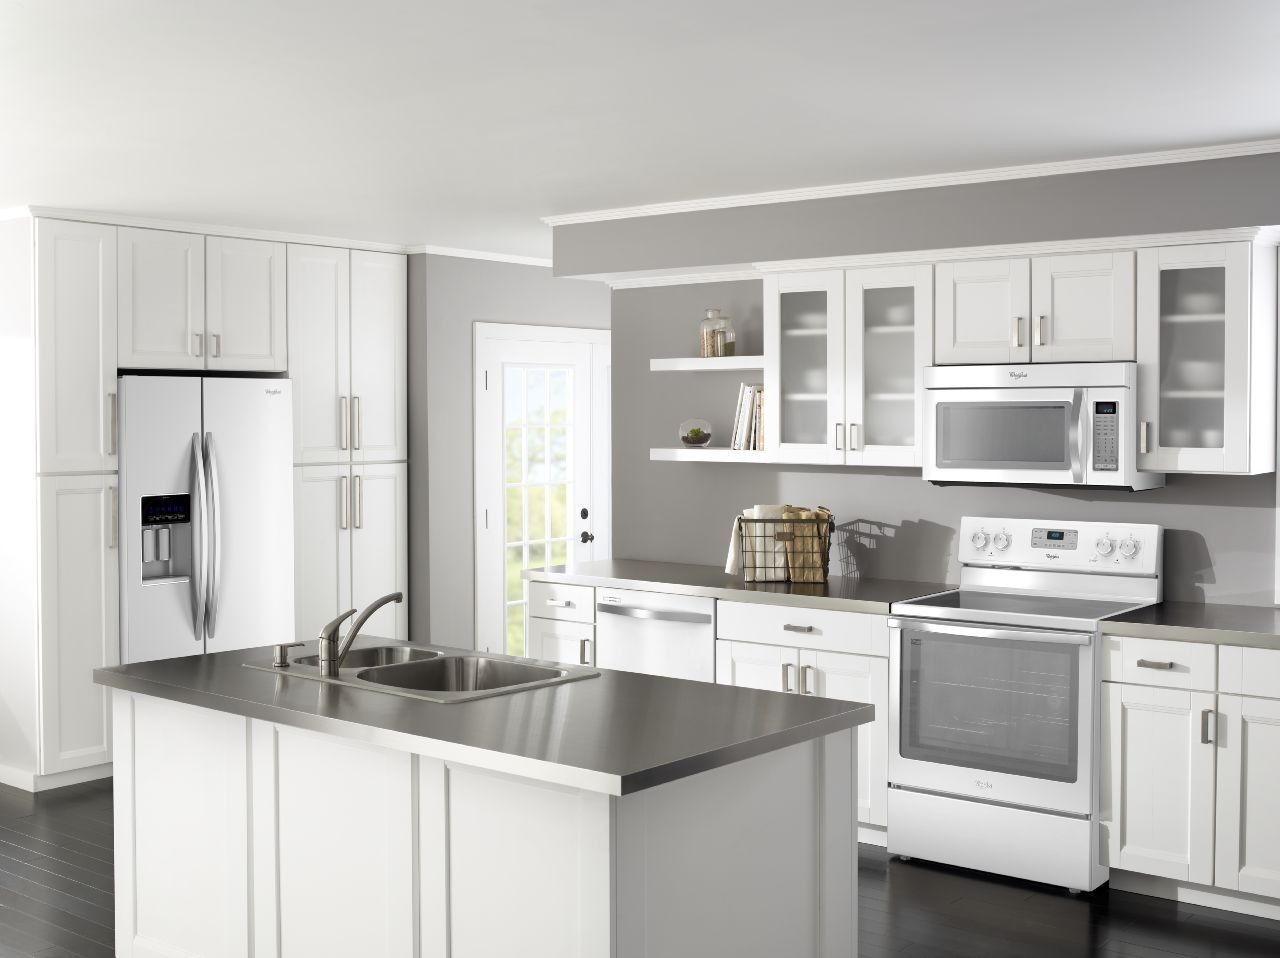 Modern Kitchen Appliance With Luxury Interior Nuance With